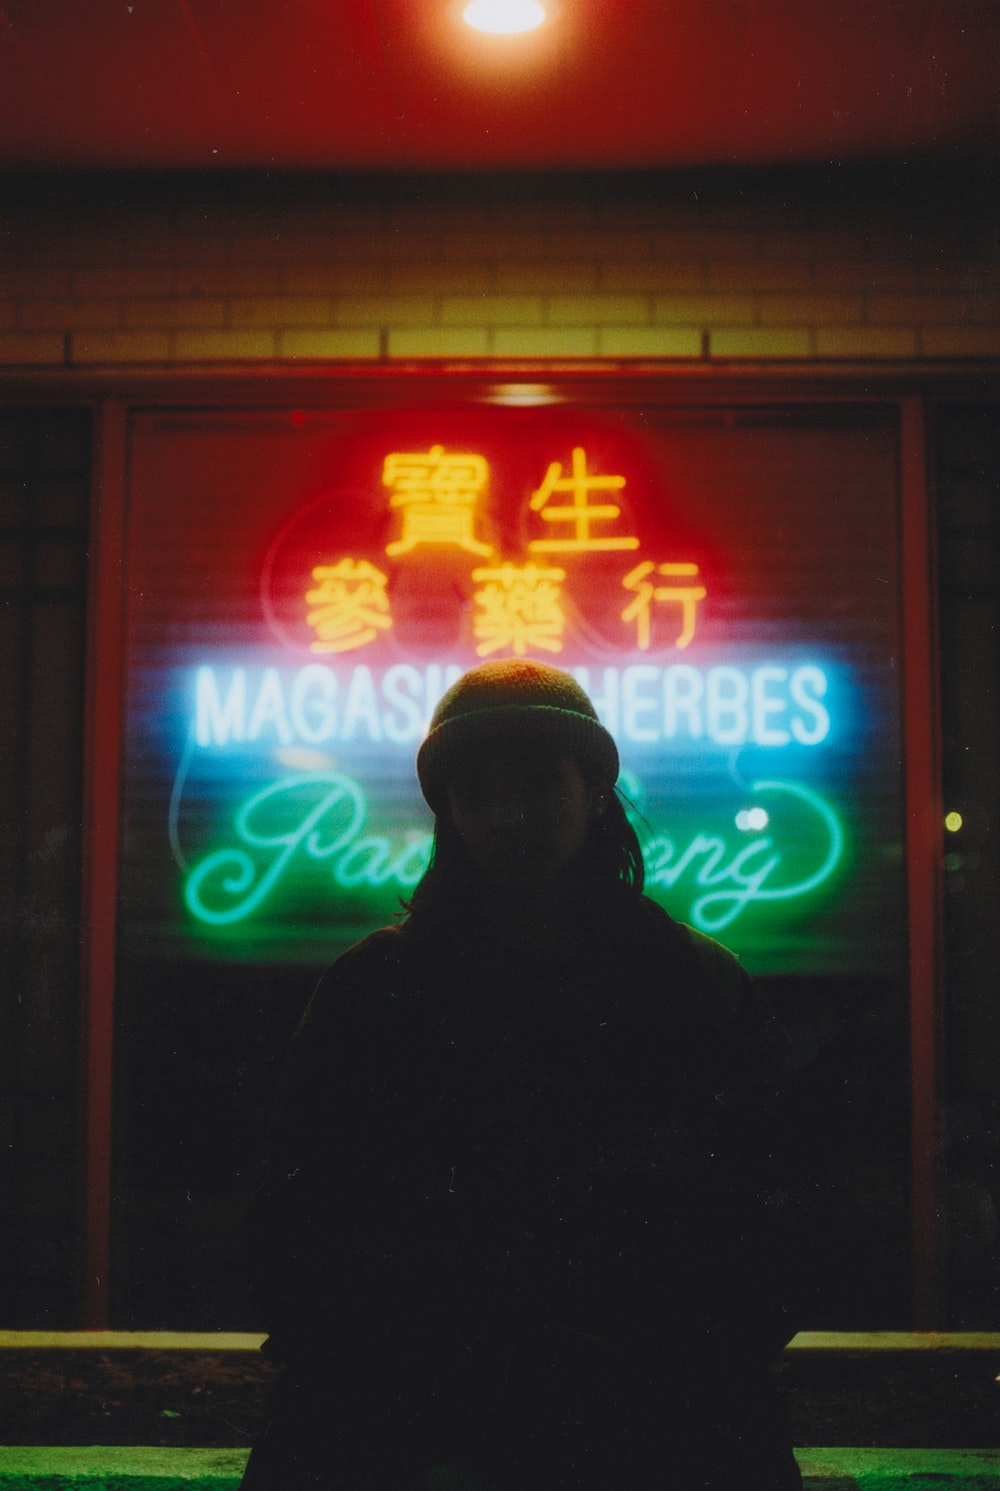 person standing in front of LED signage